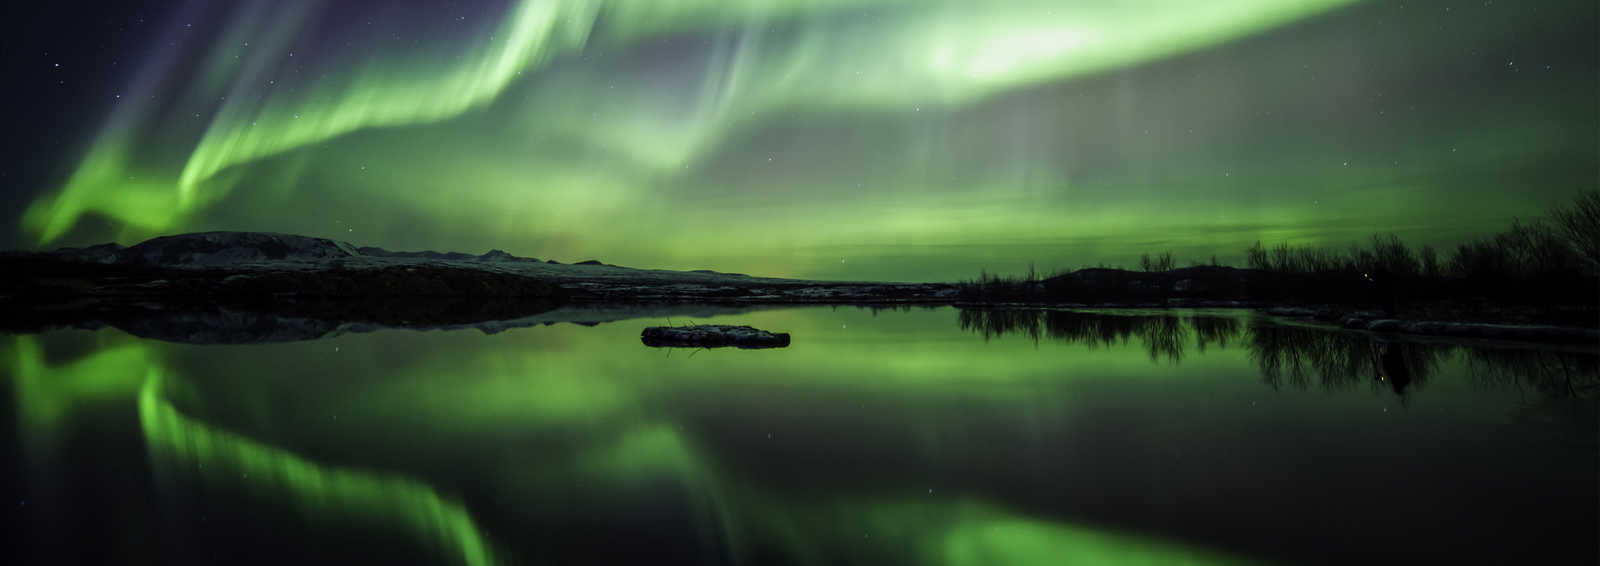 The Aurora dancing over Thingvellir N.P